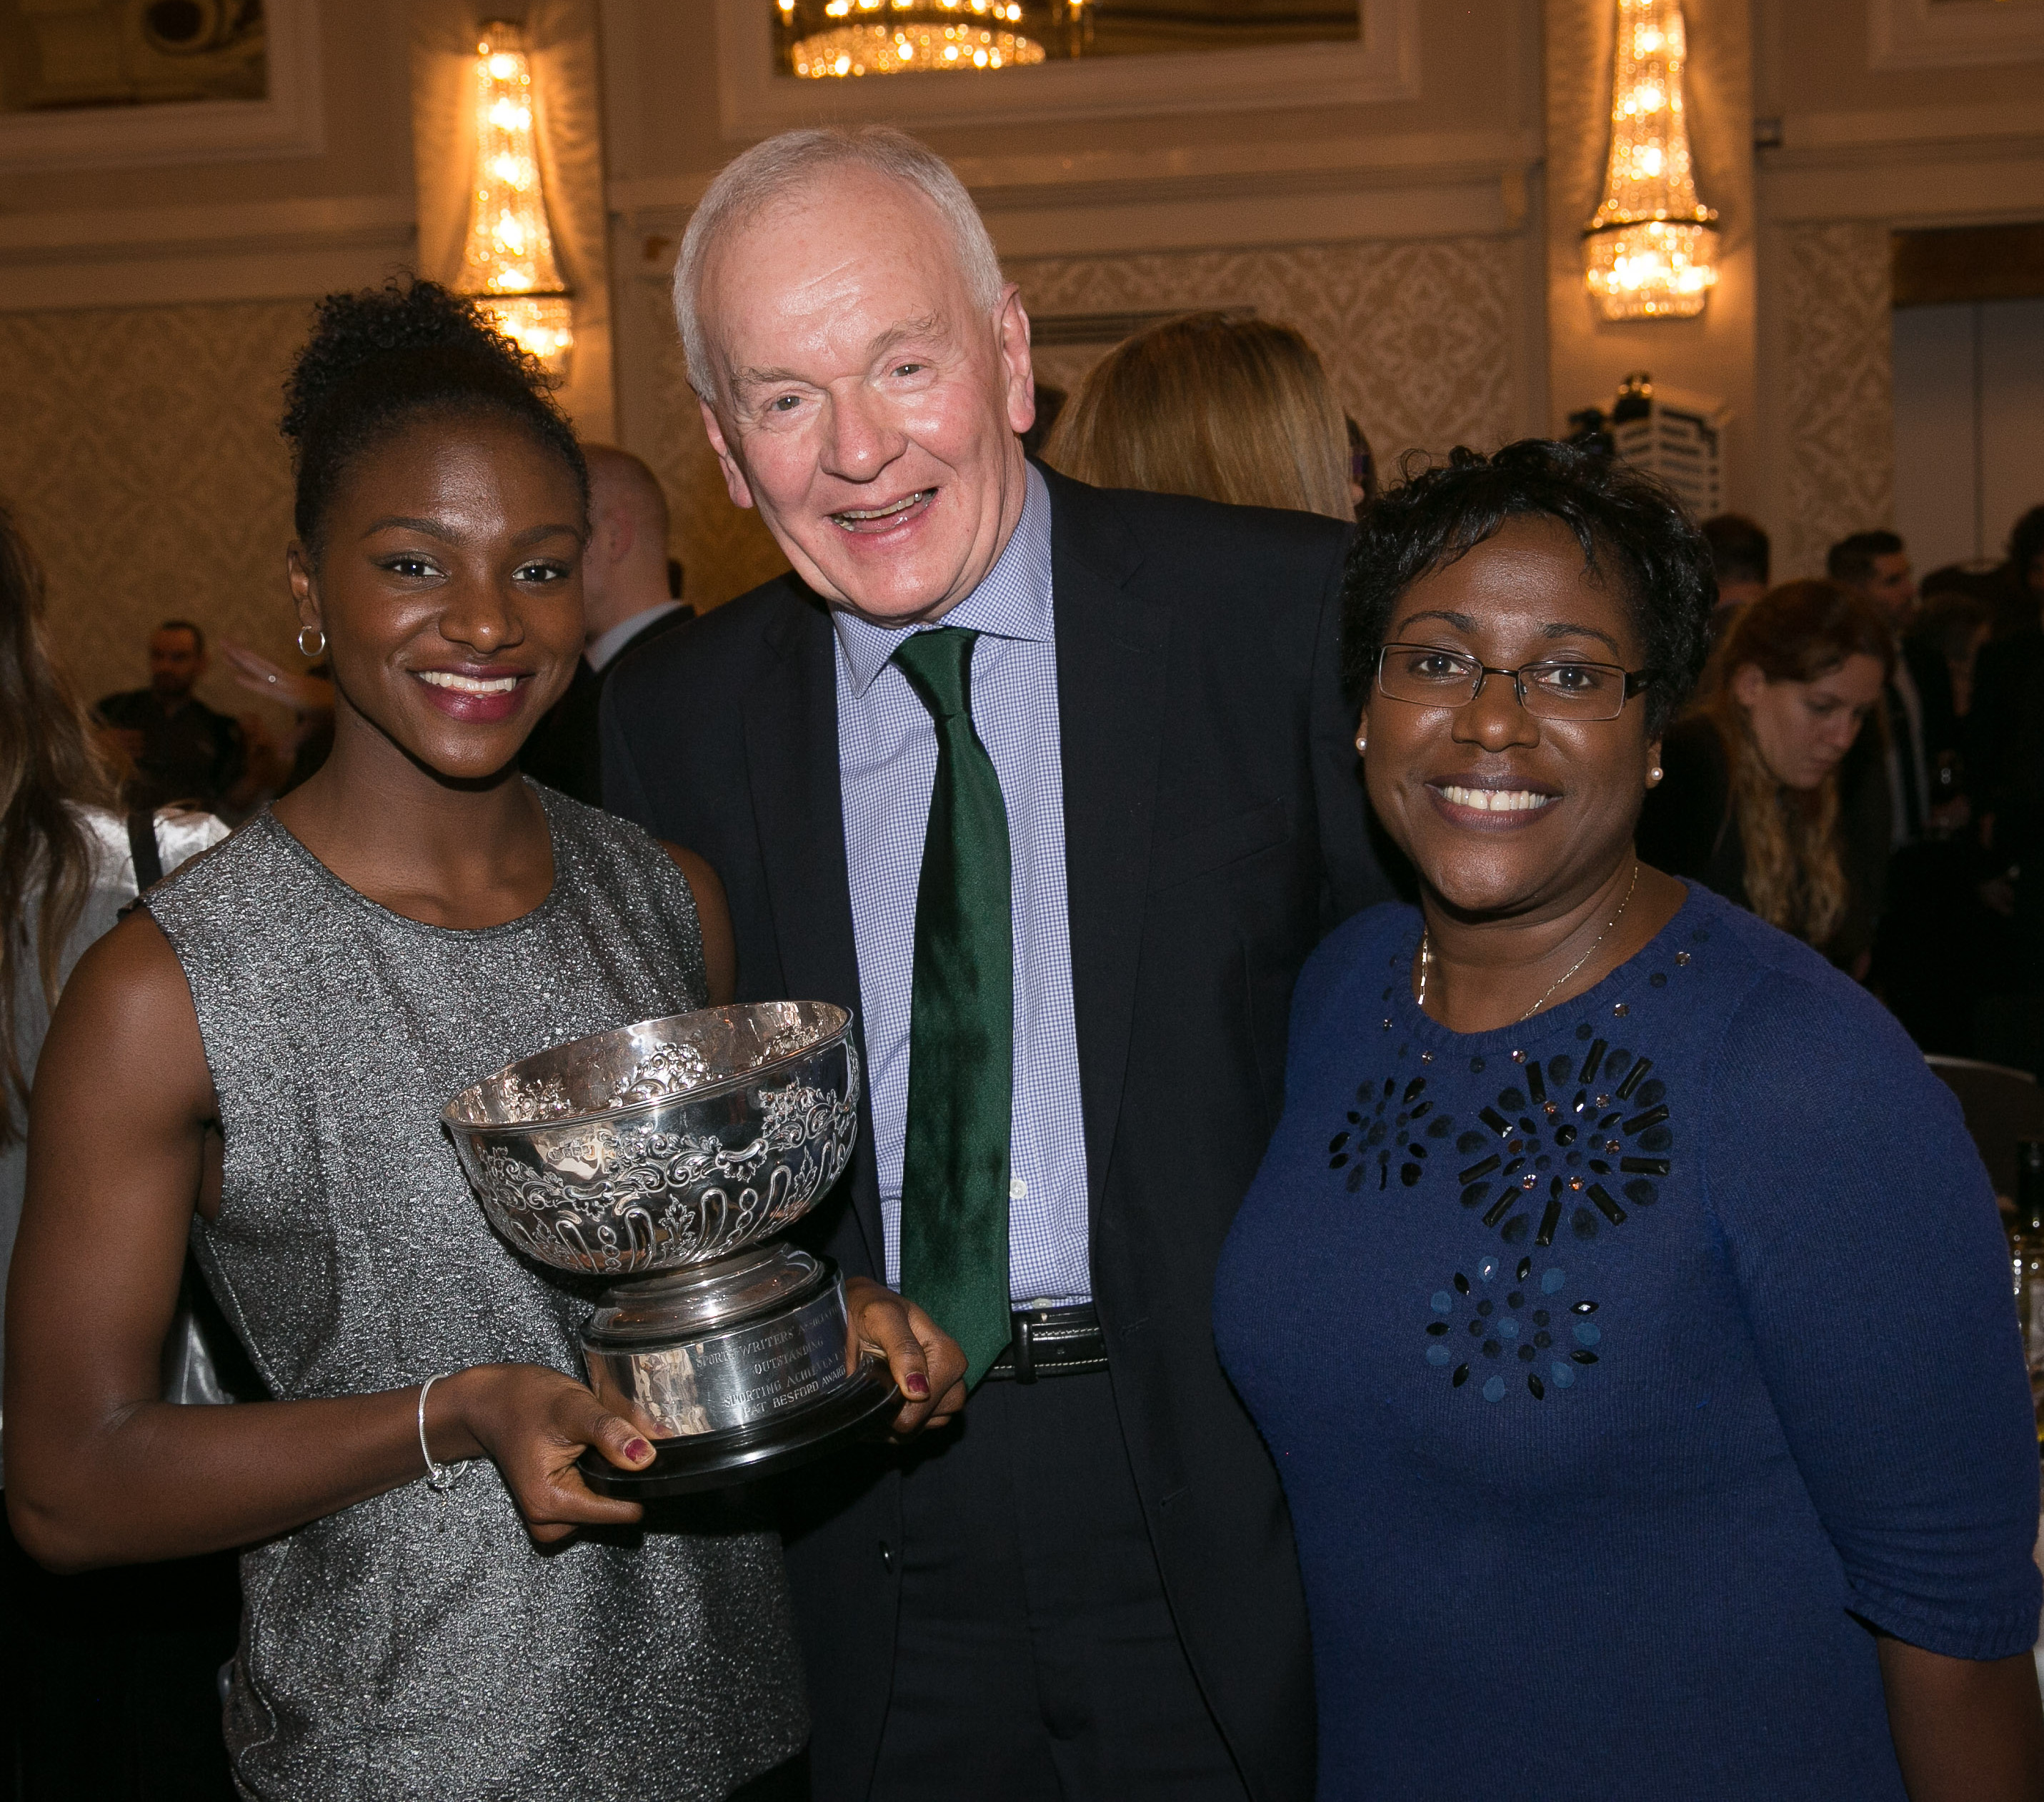 SJA2018 British Sports Awards: The case for Dina Asher-Smith